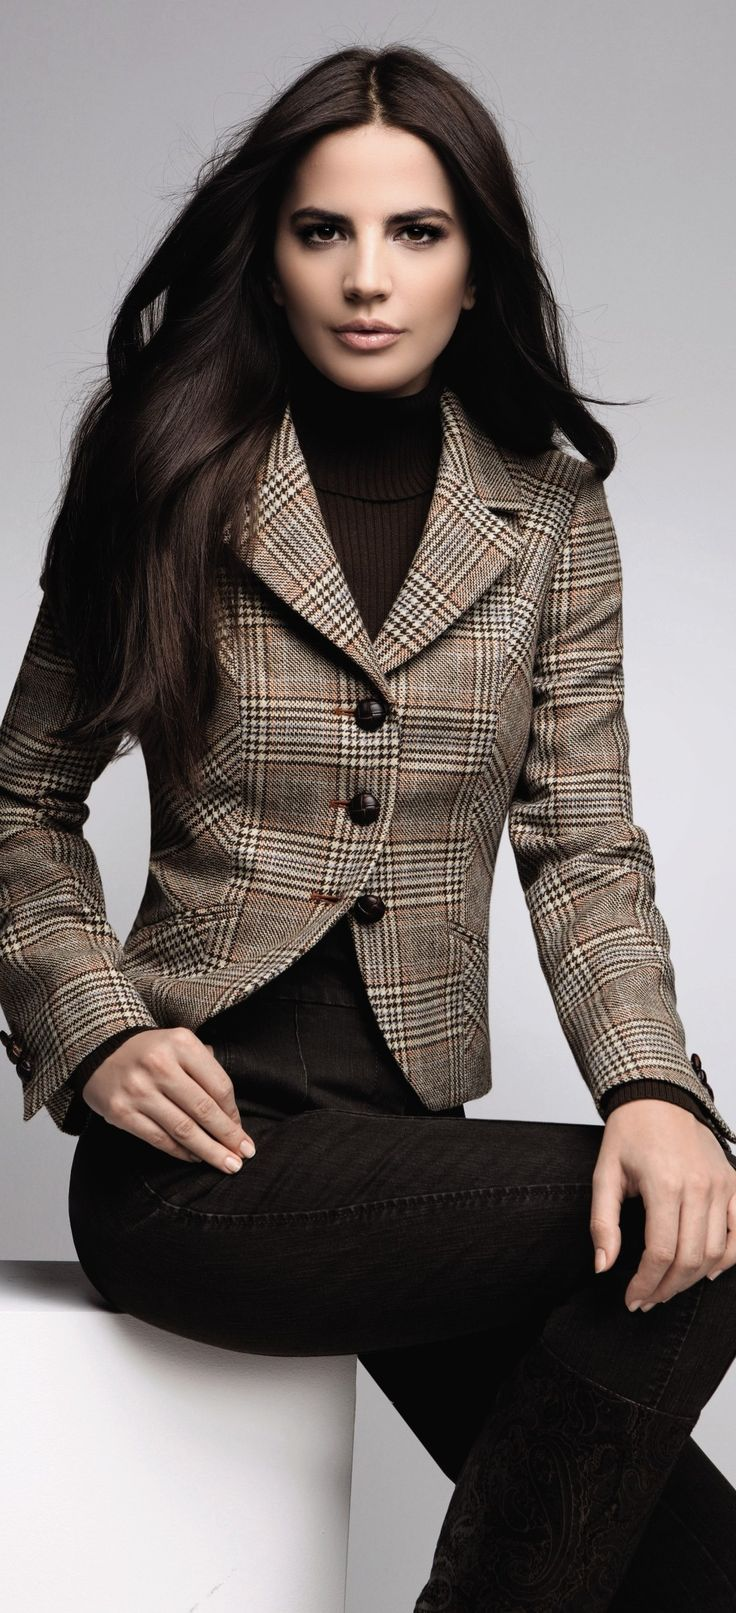 What to Wear to a Job Interview: 7 Tips for Women Over 40 http://www.boomerinas.com/2014/04/22/what-to-wear-to-a-job-interview-7-tips-for-women-over-40-or-50-or-60/